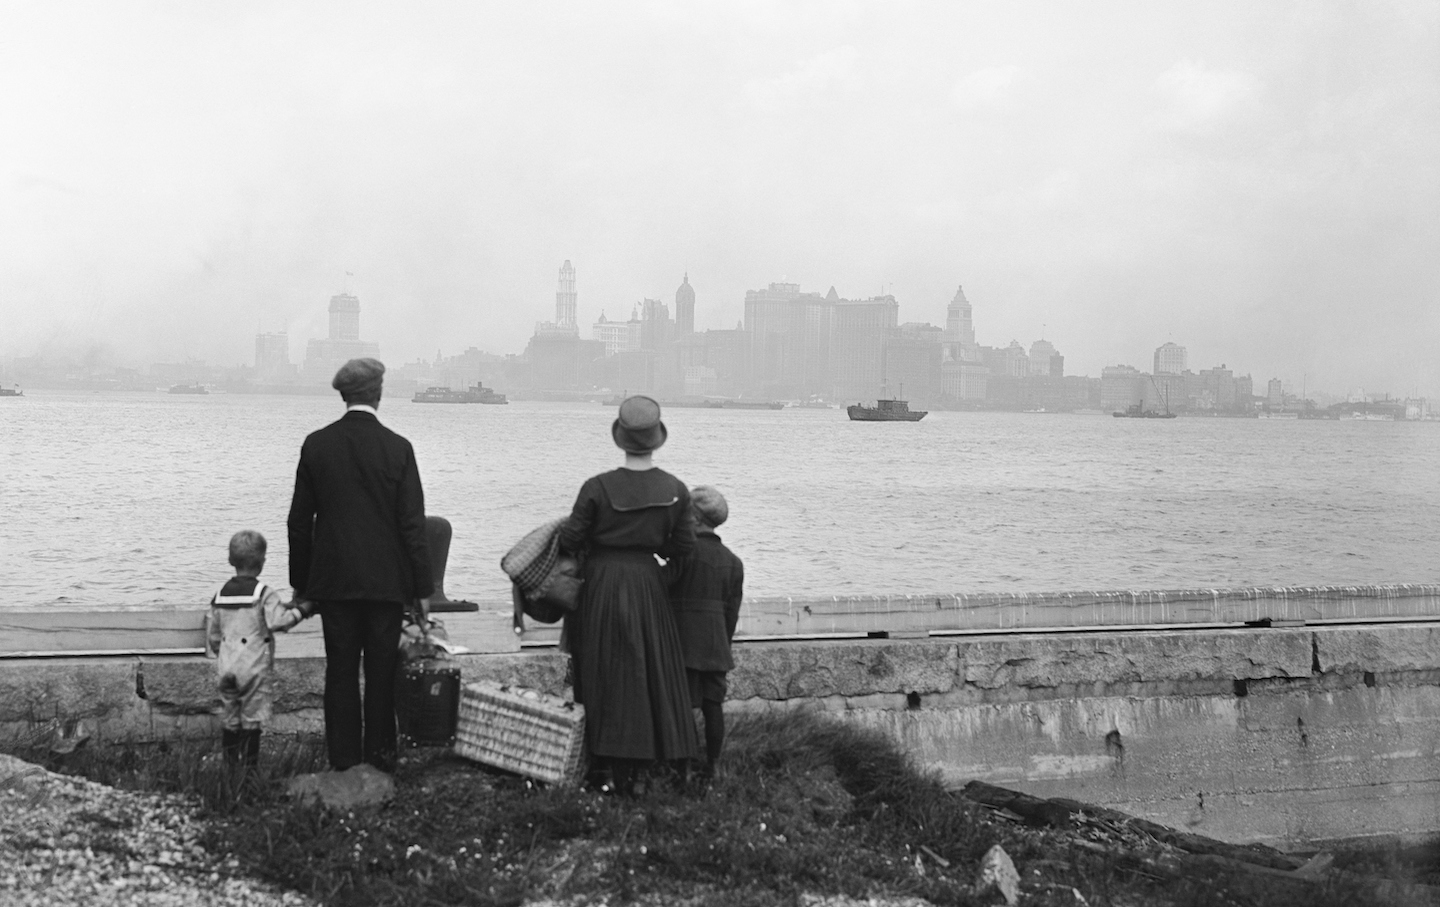 Immigrant Family Looking at New York Skyline